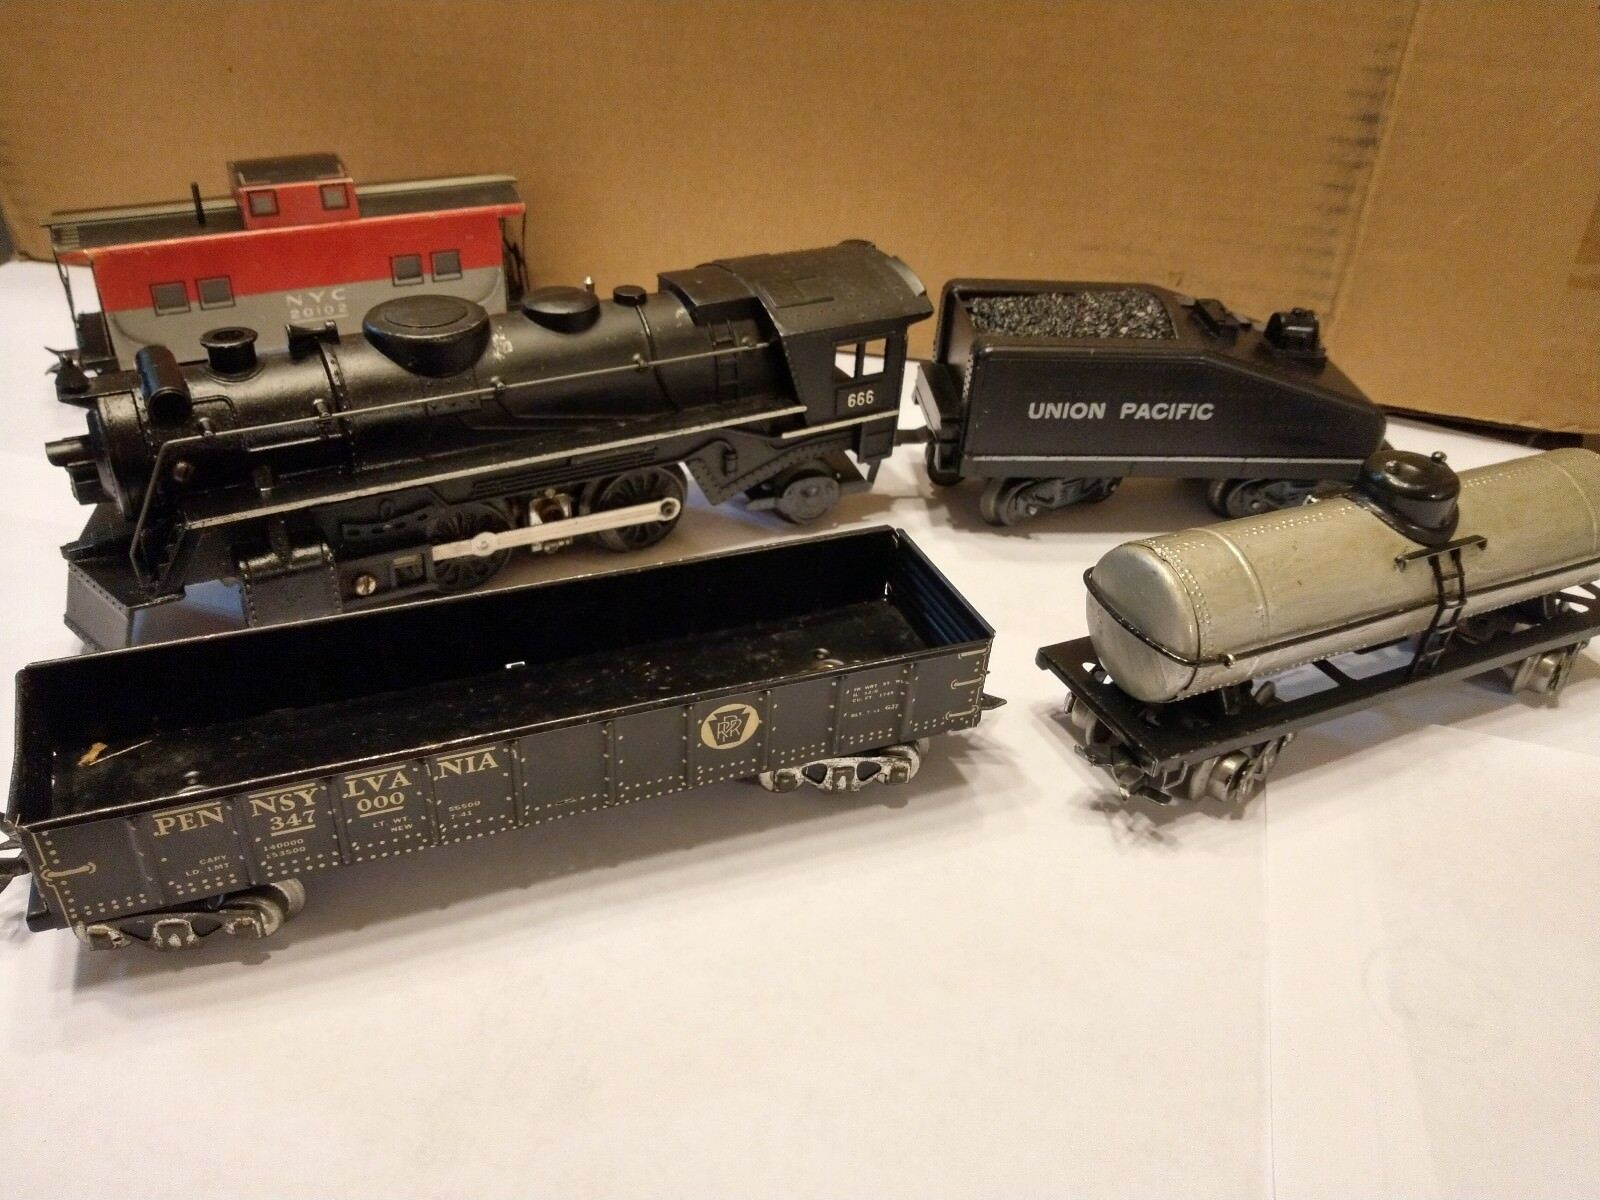 1950's Marx Train Set with 666 Steam Engine and four tin plate cars.